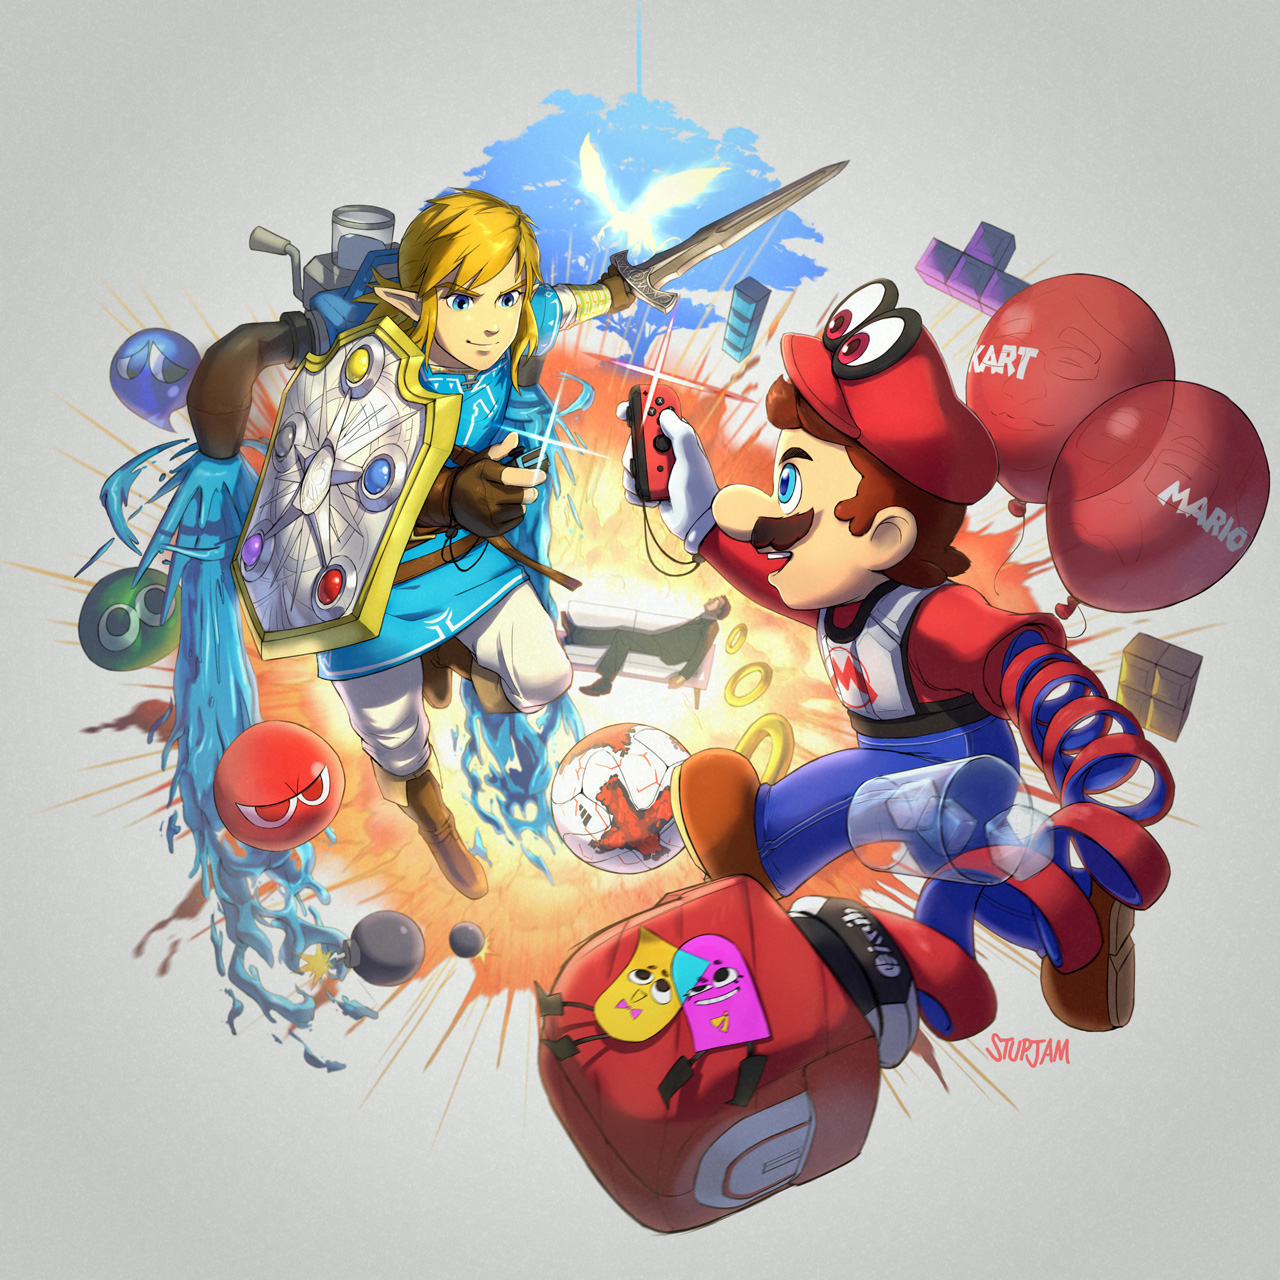 art games for nintendo switch